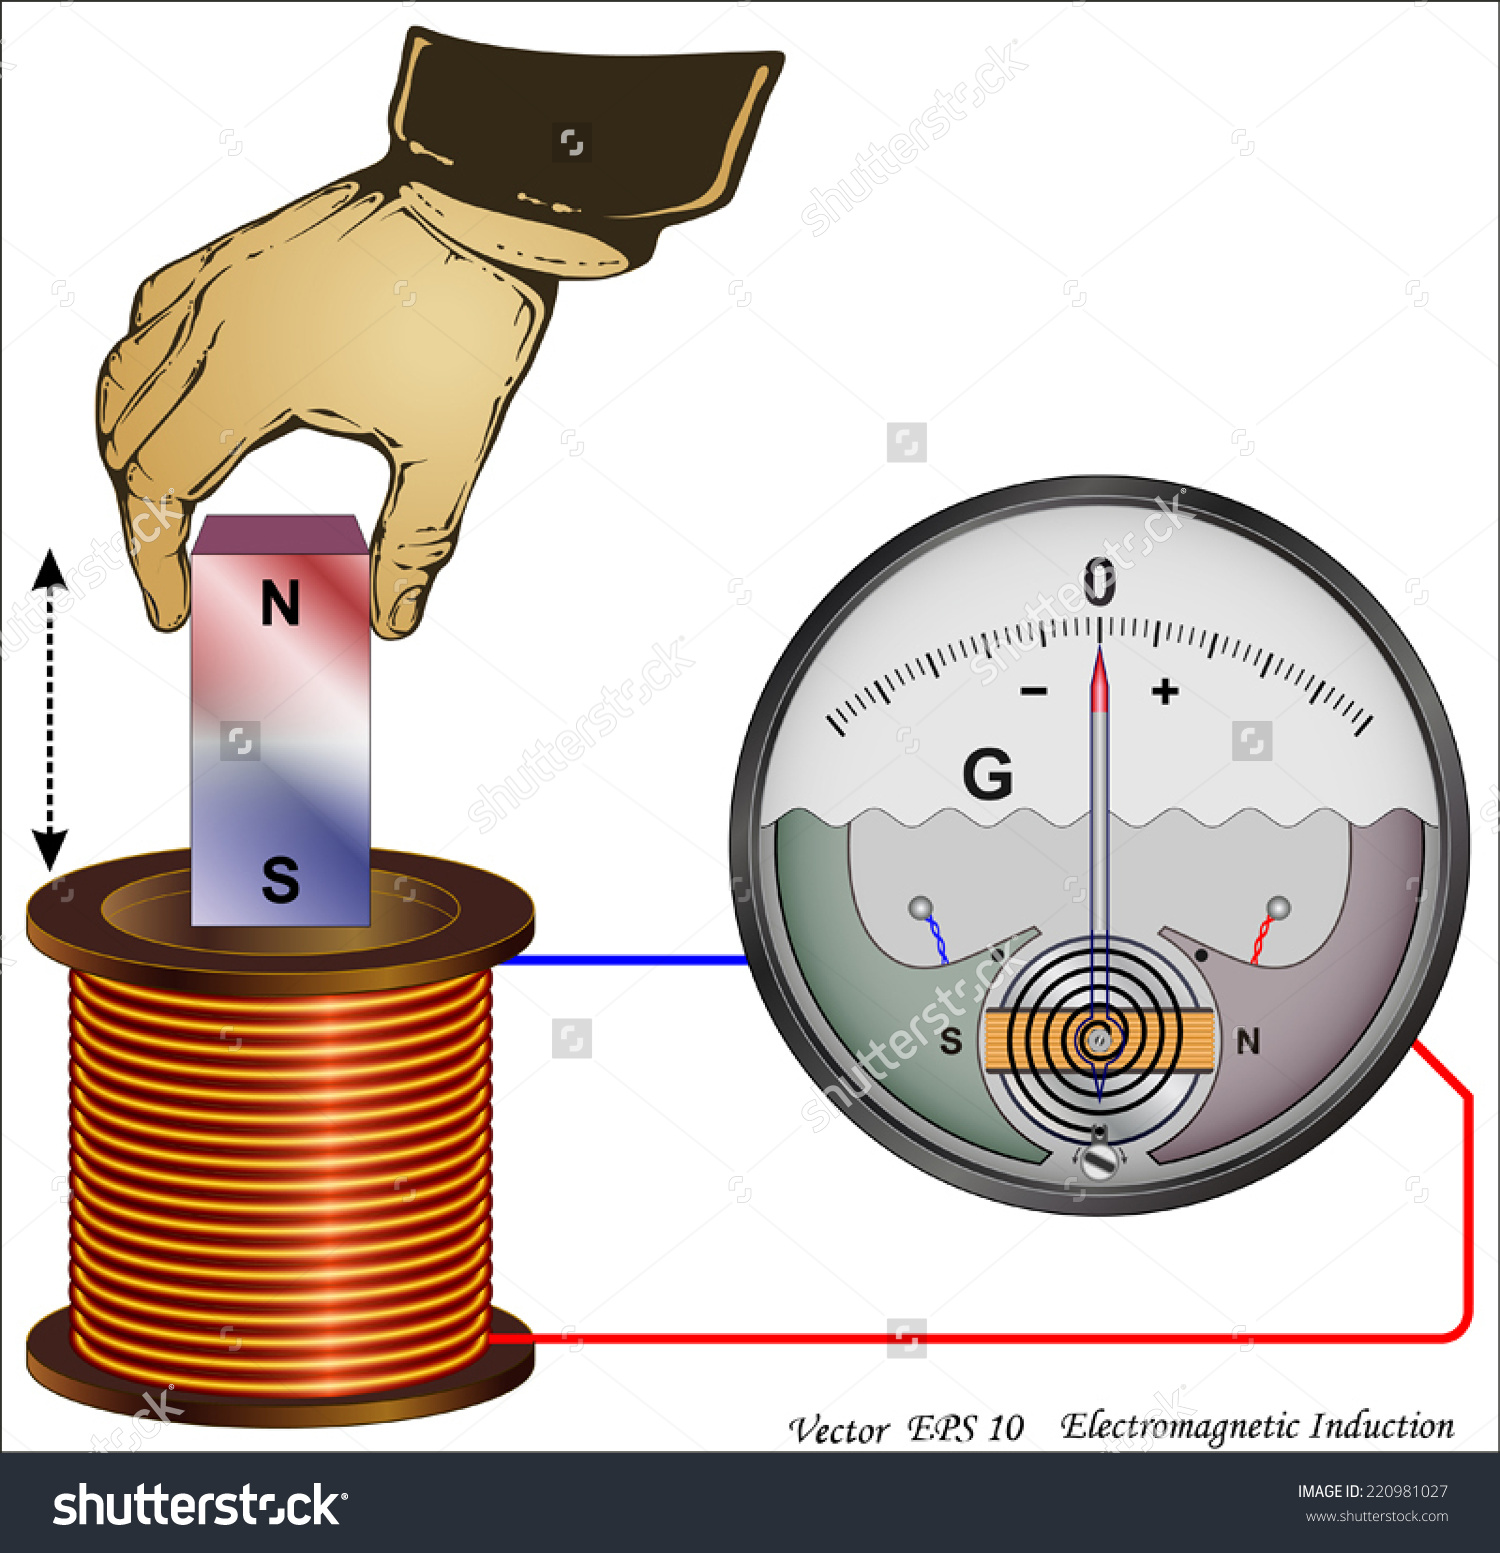 a description of destructive electromagnetism For visitors who are not already familiar with ndt, the general information below is intended to provide a basic description of ndt and the most common test methods and techniques used when performing ndt.